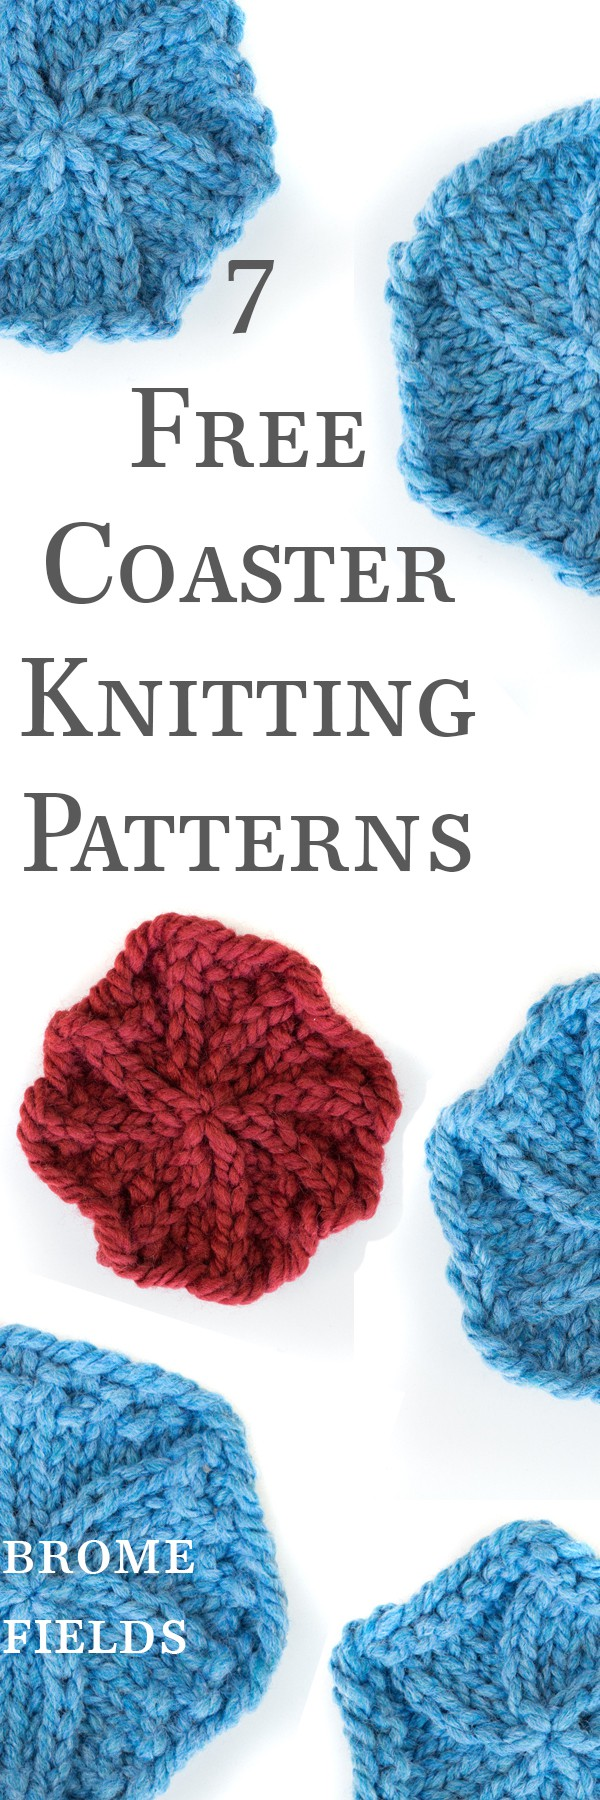 7 FREE Circle Coaster Knitting Patterns by Brome Fields